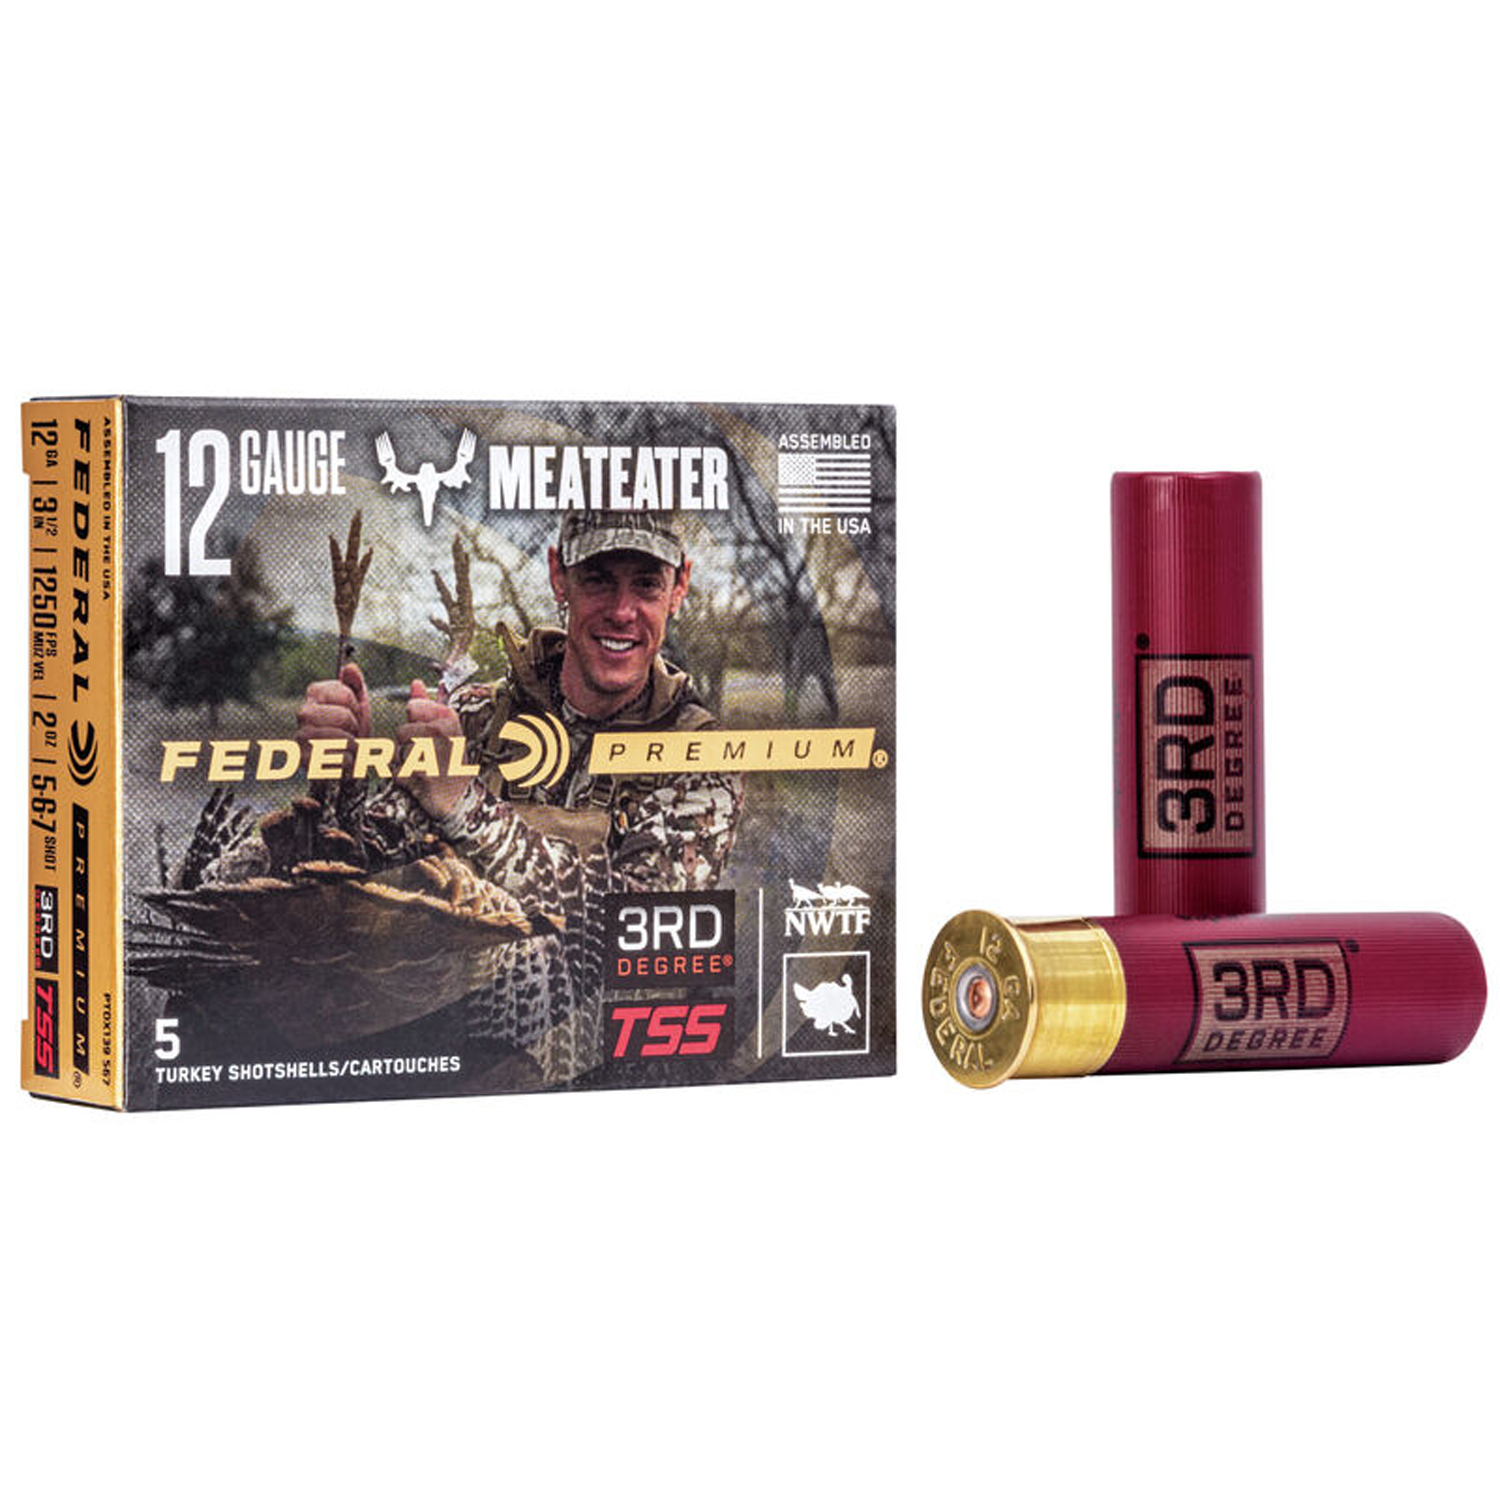 Federal 3rd Degree Turkey Load 12 ga 3 1/2